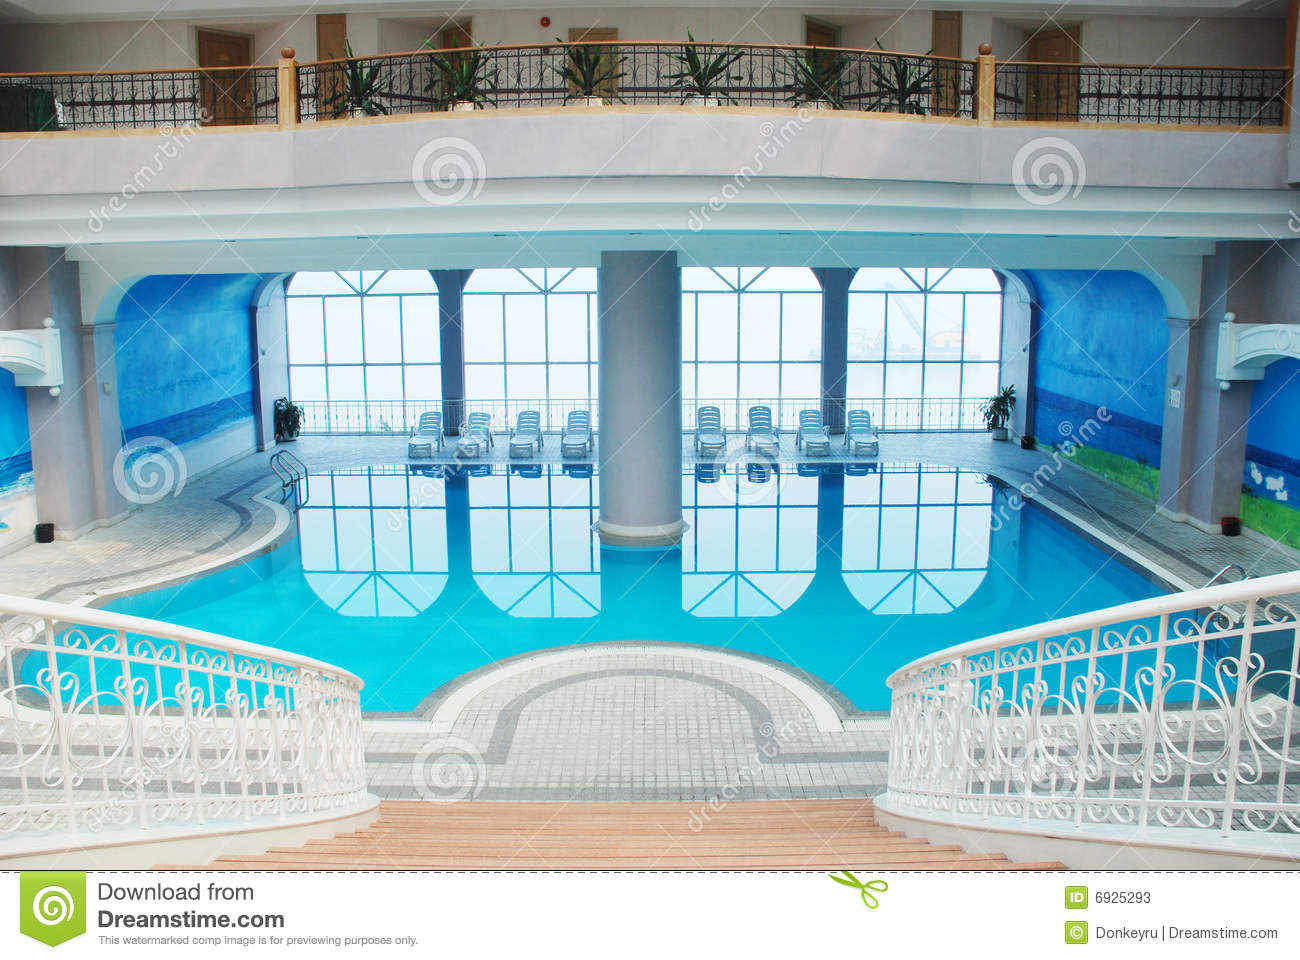 La piscine d 39 int rieur photos stock image 6925293 for Piscine d interieur